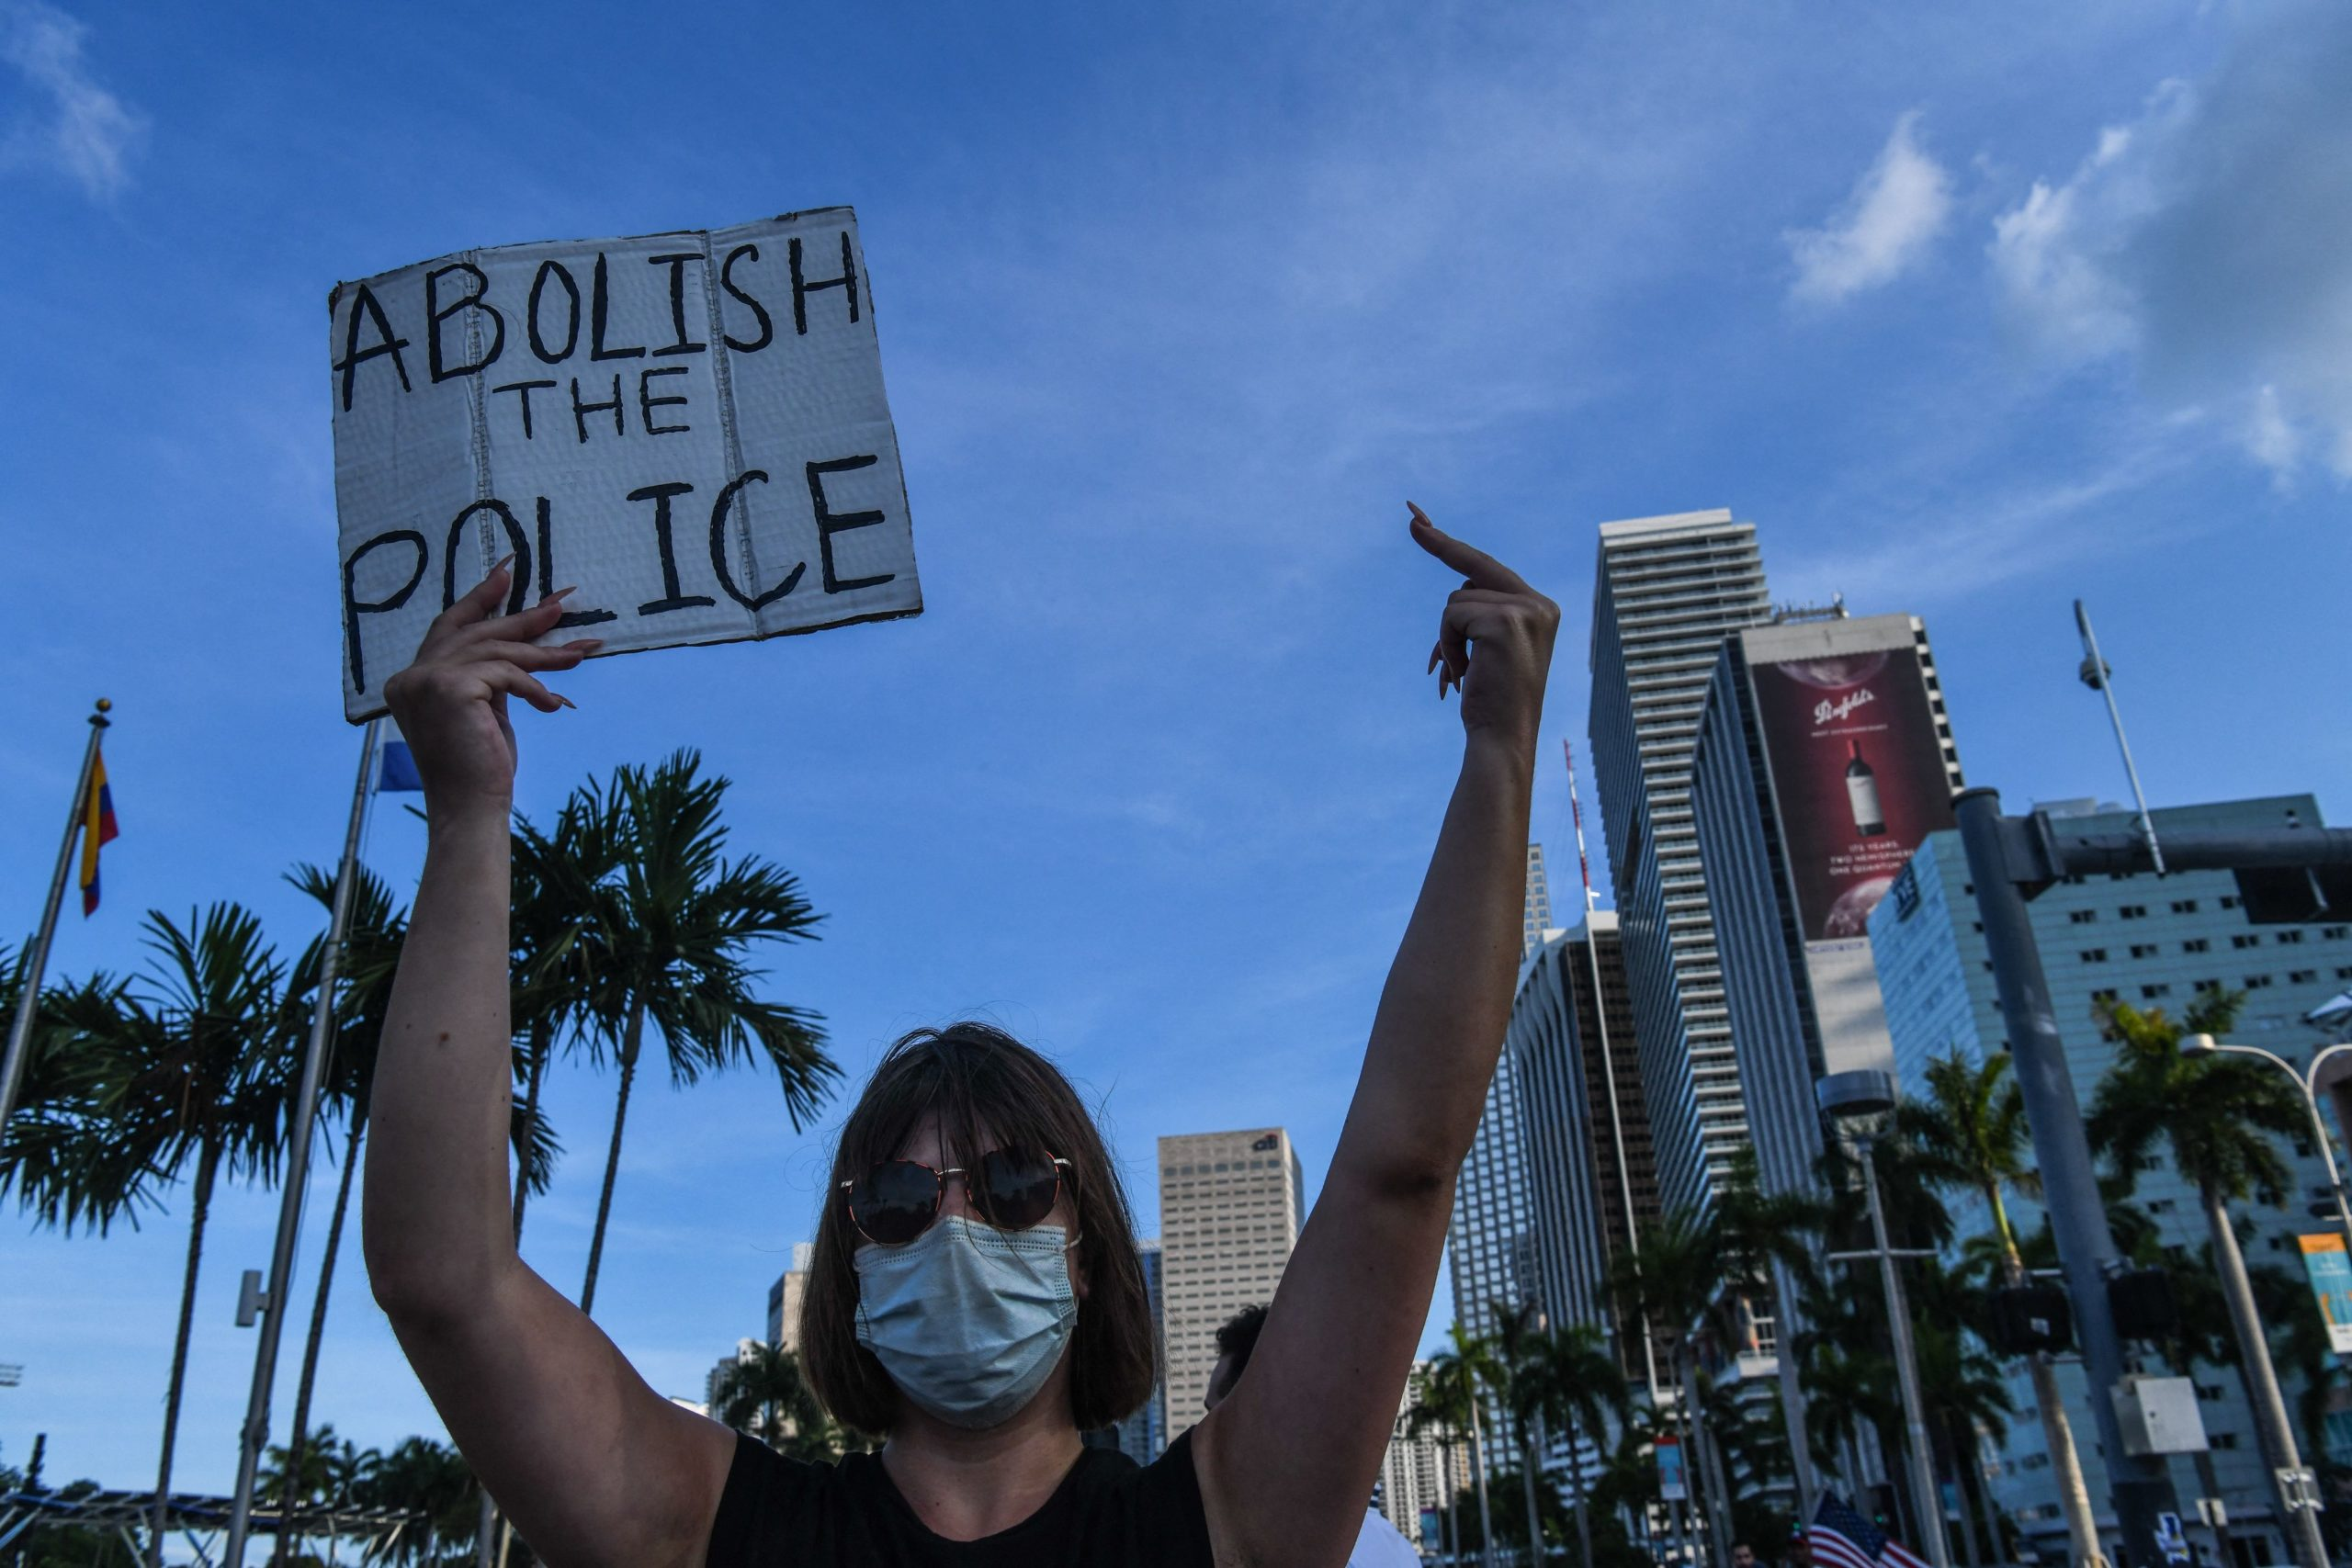 """A woman makes a rude gesture while holding a """"Abolish the Police"""" sign. Photo by CHANDAN KHANNA/AFP via Getty Images)"""